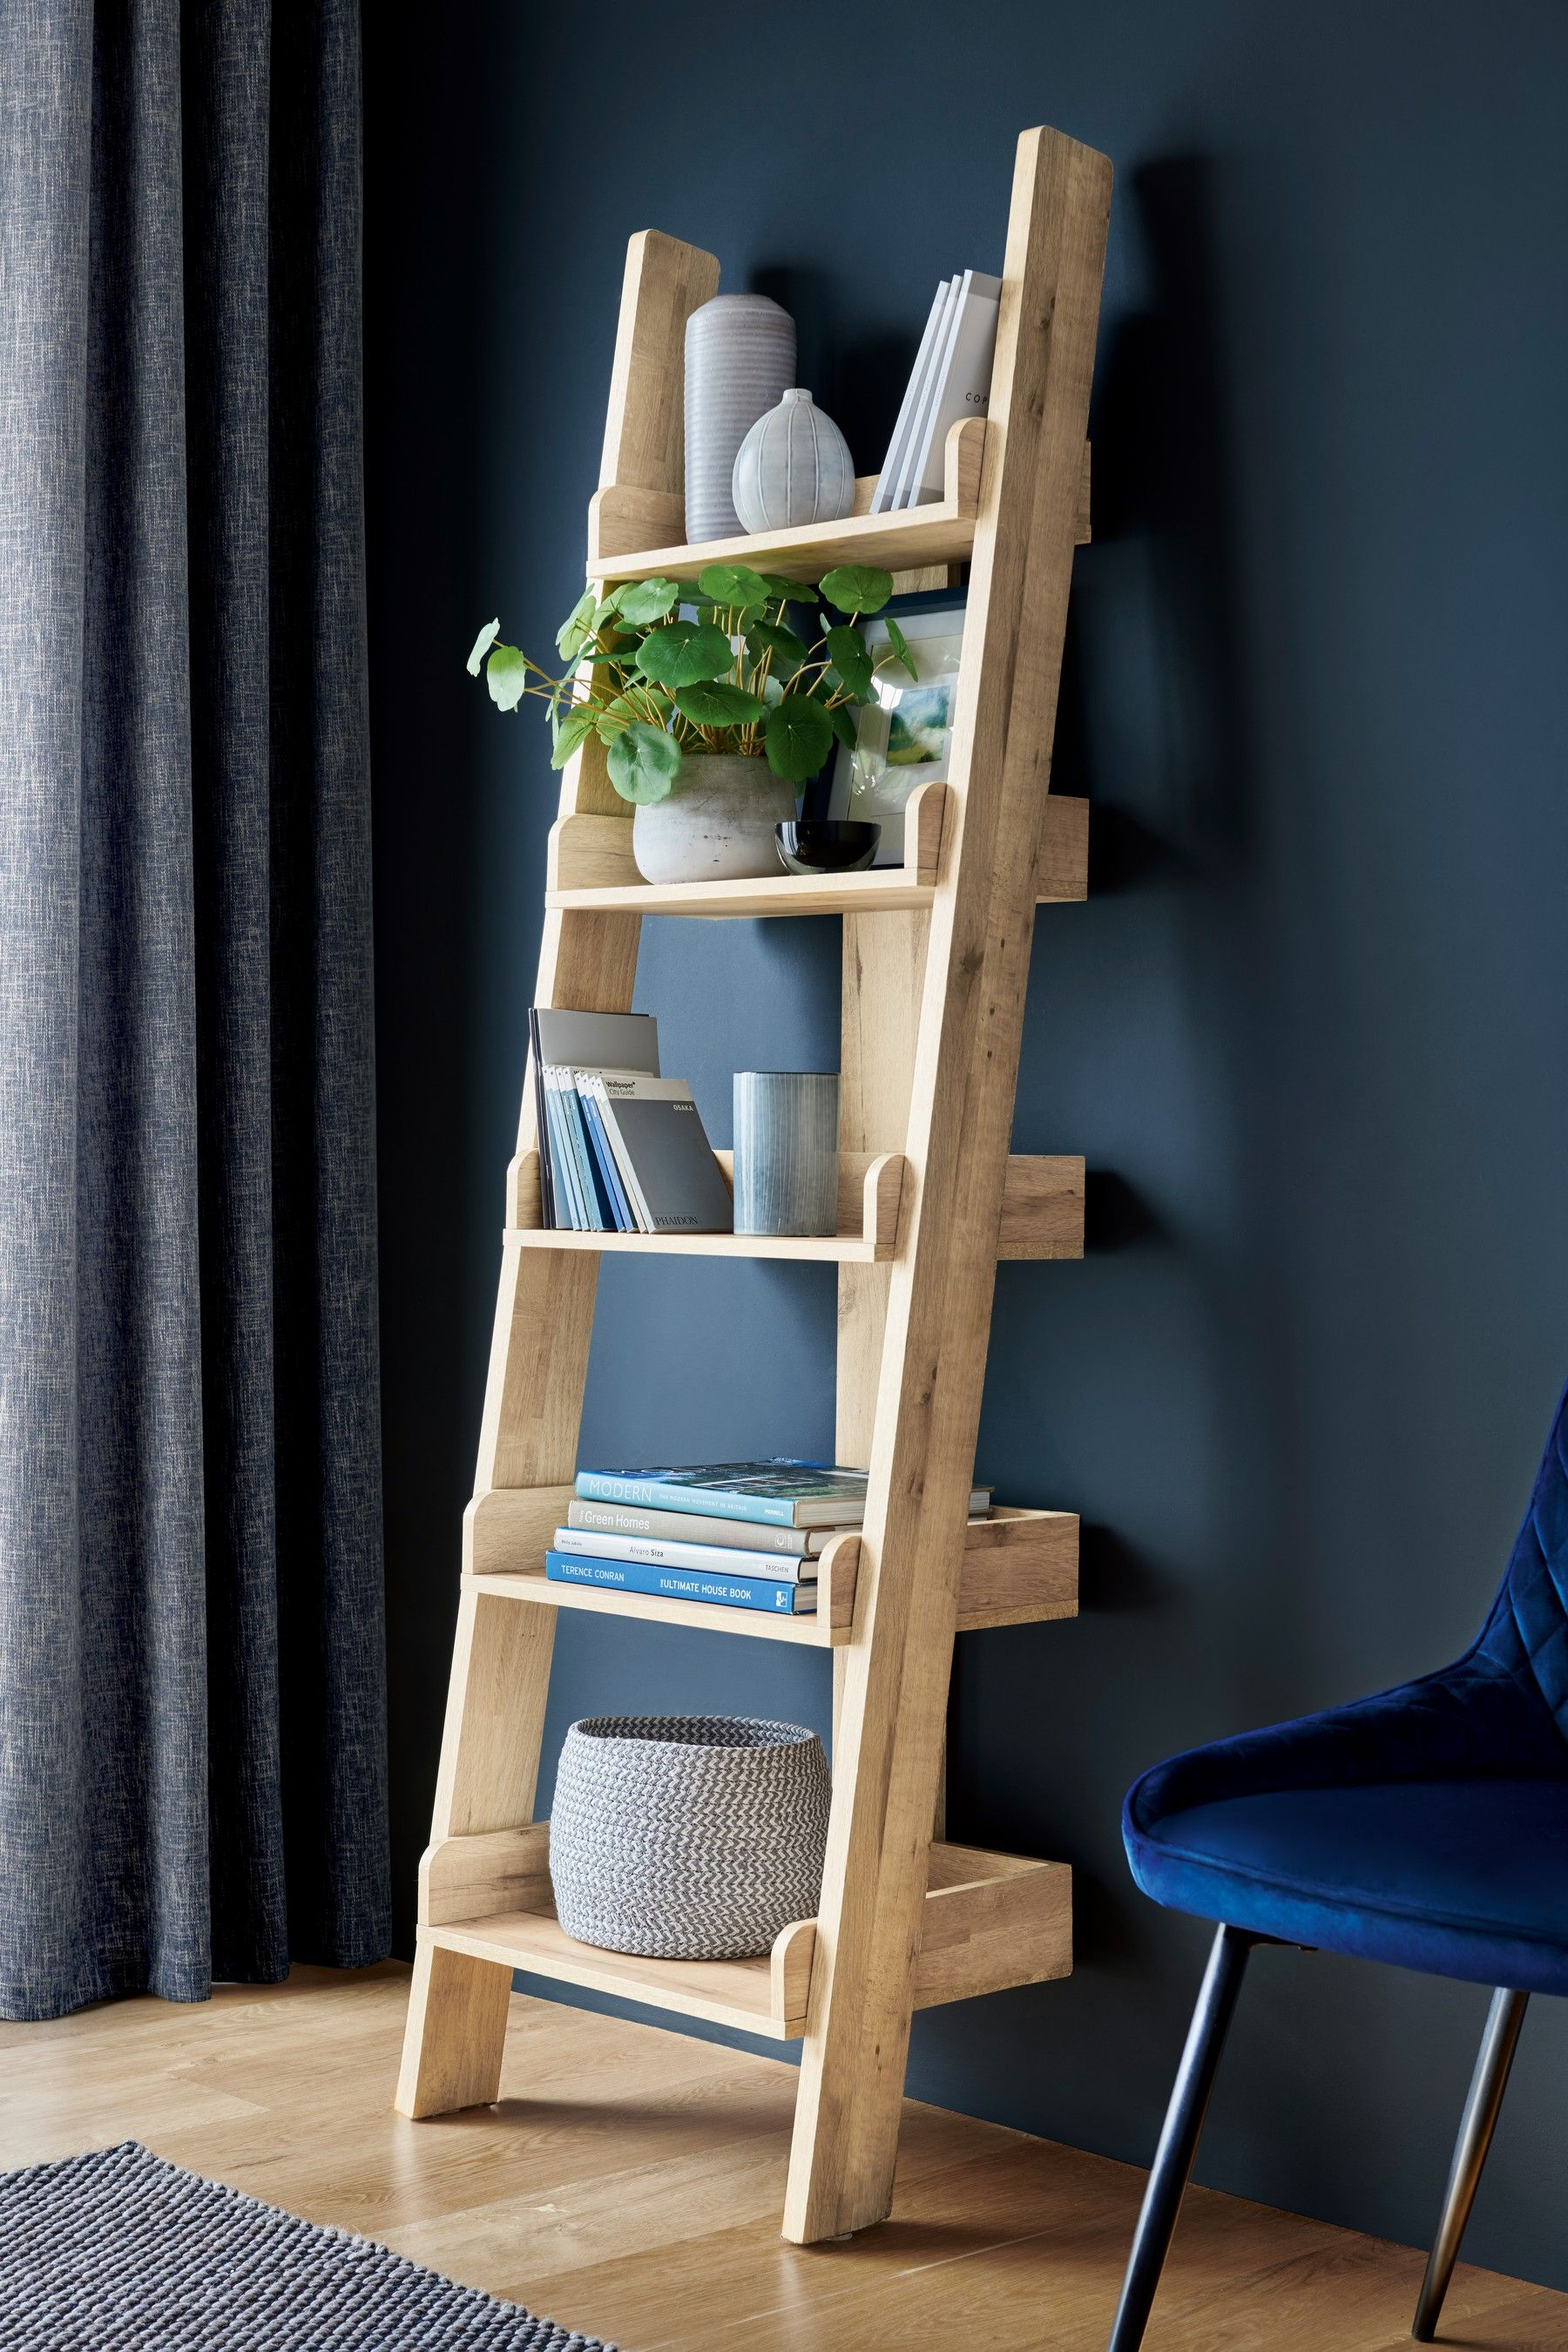 Bronx Ladder Shelf in 2020 Shelves, Bookcase shelves